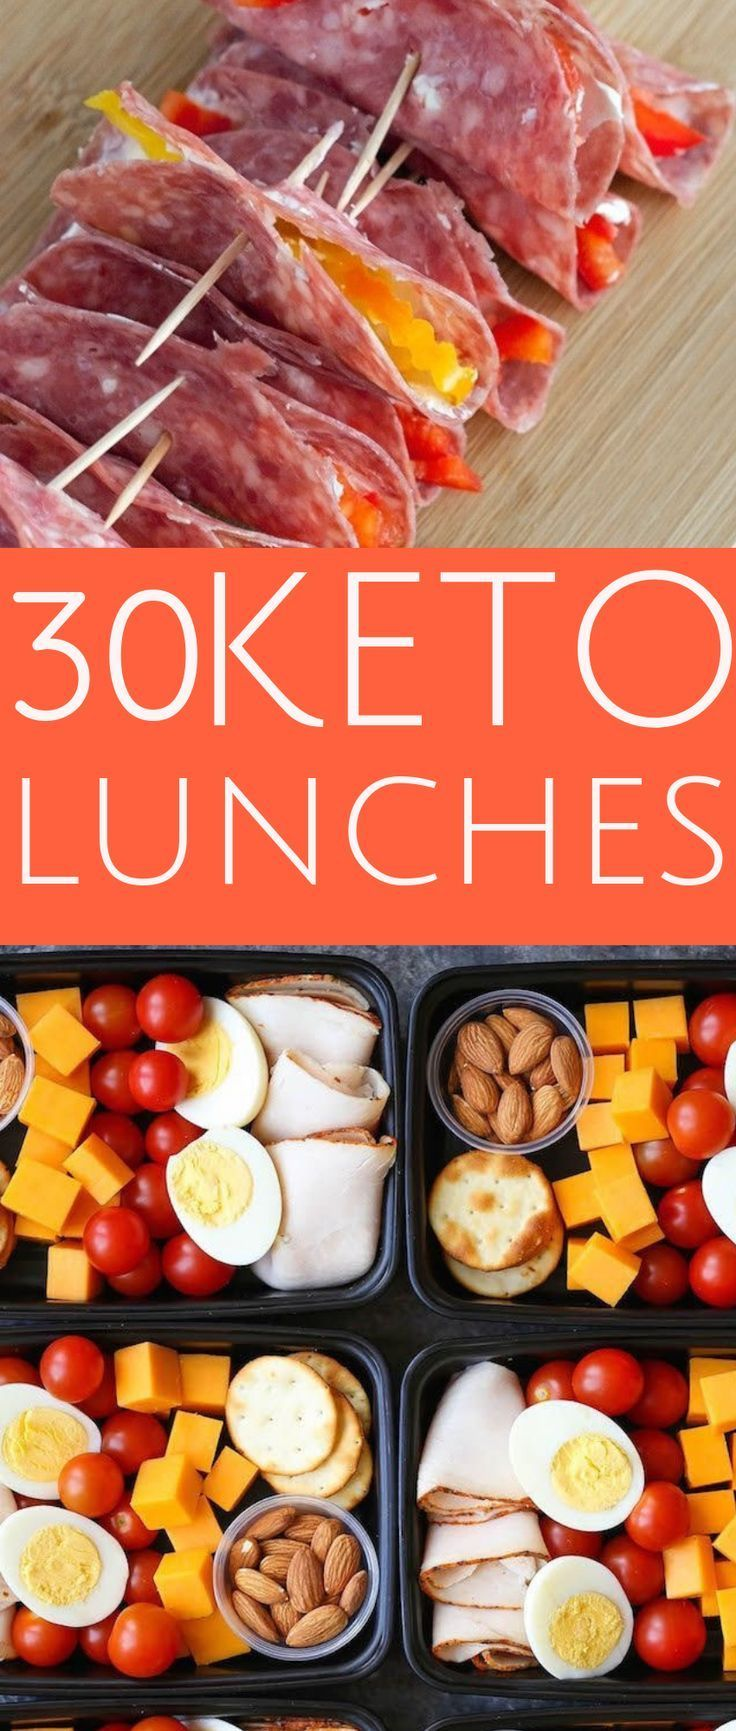 Keto lunches for work, ideas for keto lunches, simple keto lunches, keto lunches on the go, …